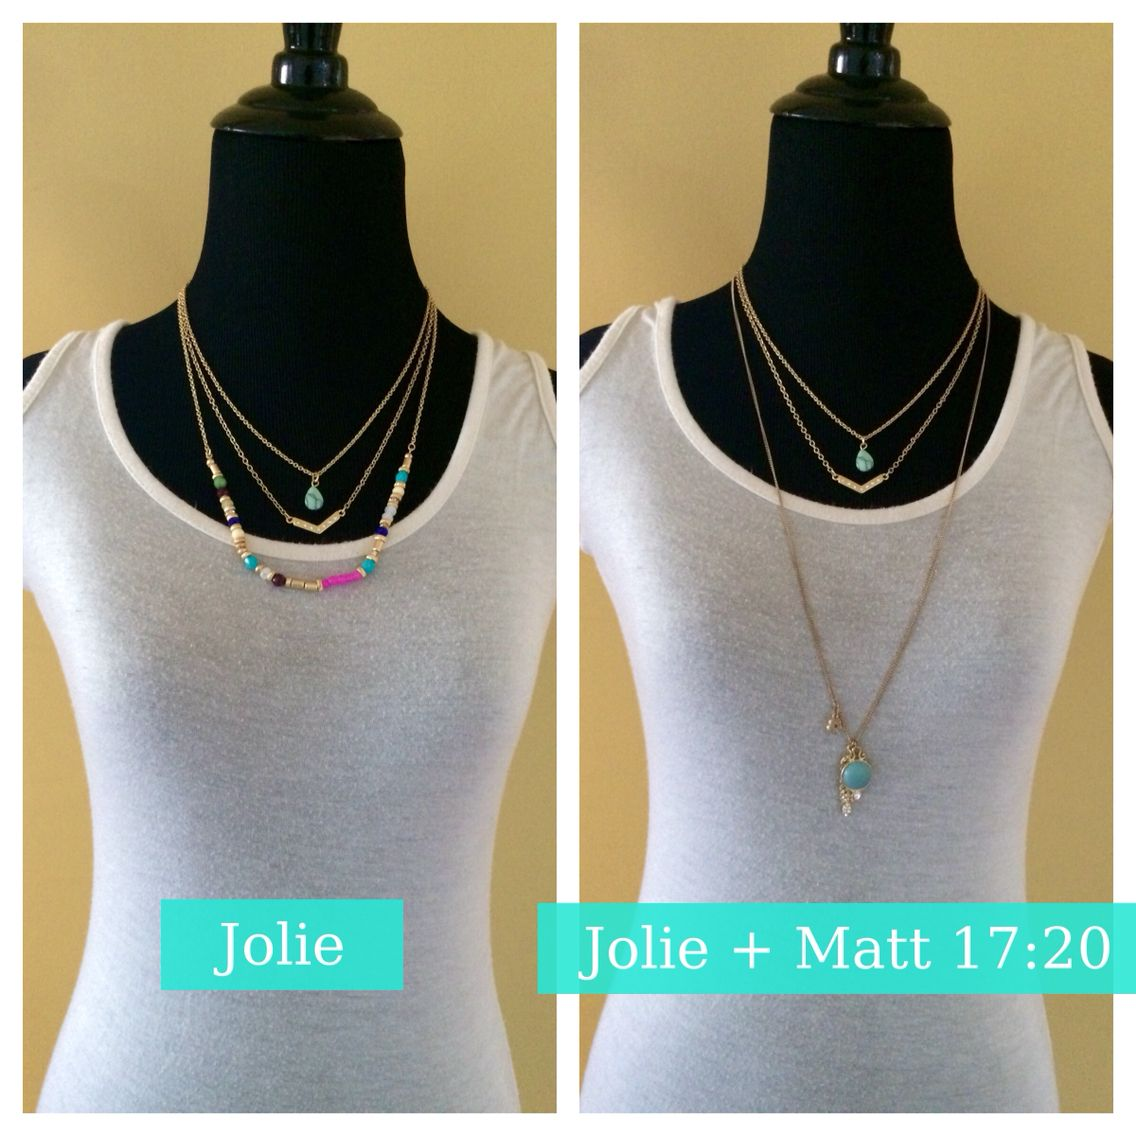 Jolie  Left: Jolie, Right: Jolie (with third strand removed) and Matthew 17:20  #pdstyle #hellospring #matthew1720 #jolie #hellostyle #spring2015